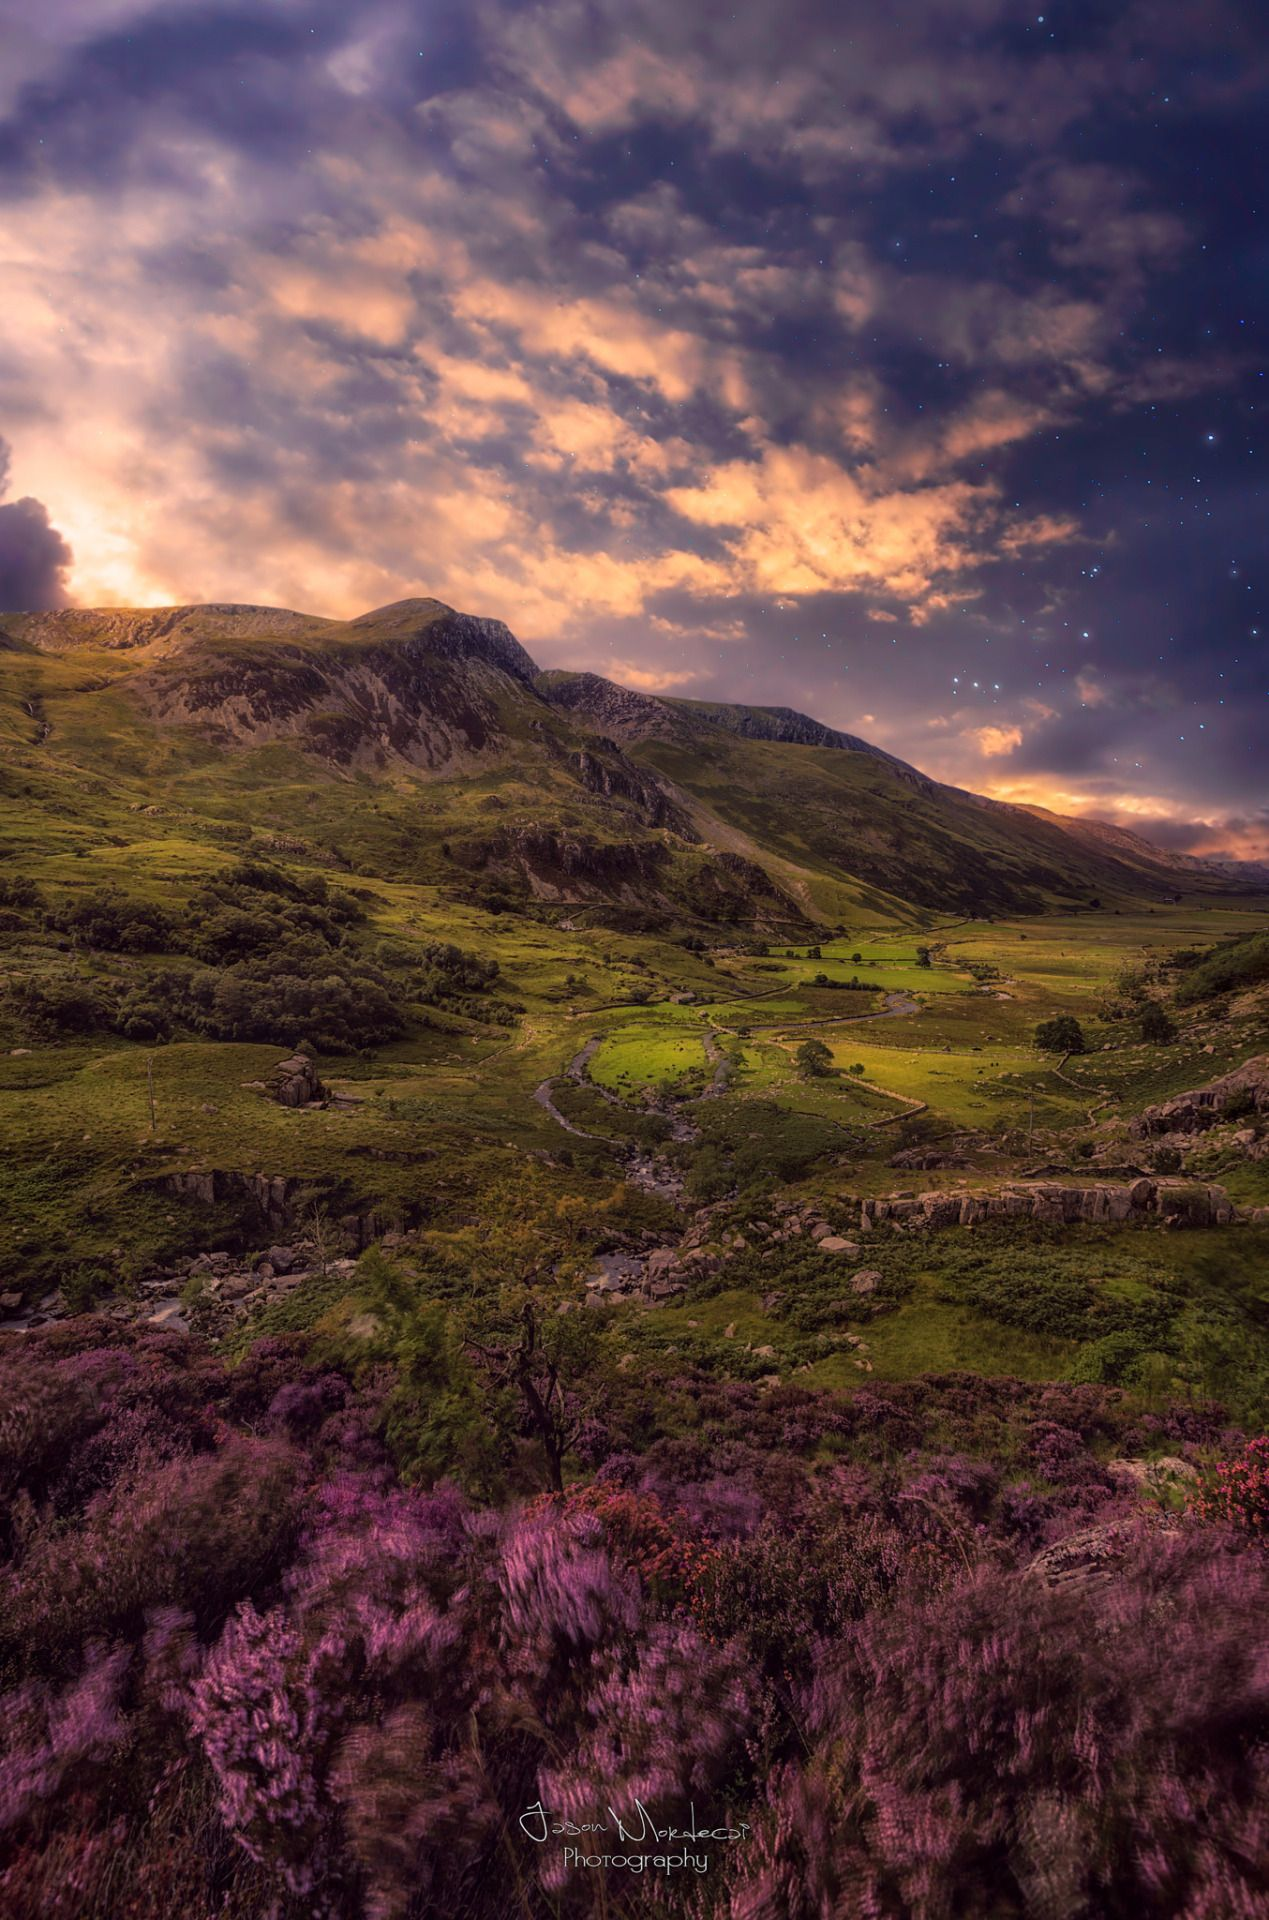 Out of This World. Ethereal Valley by Jason Mordecai